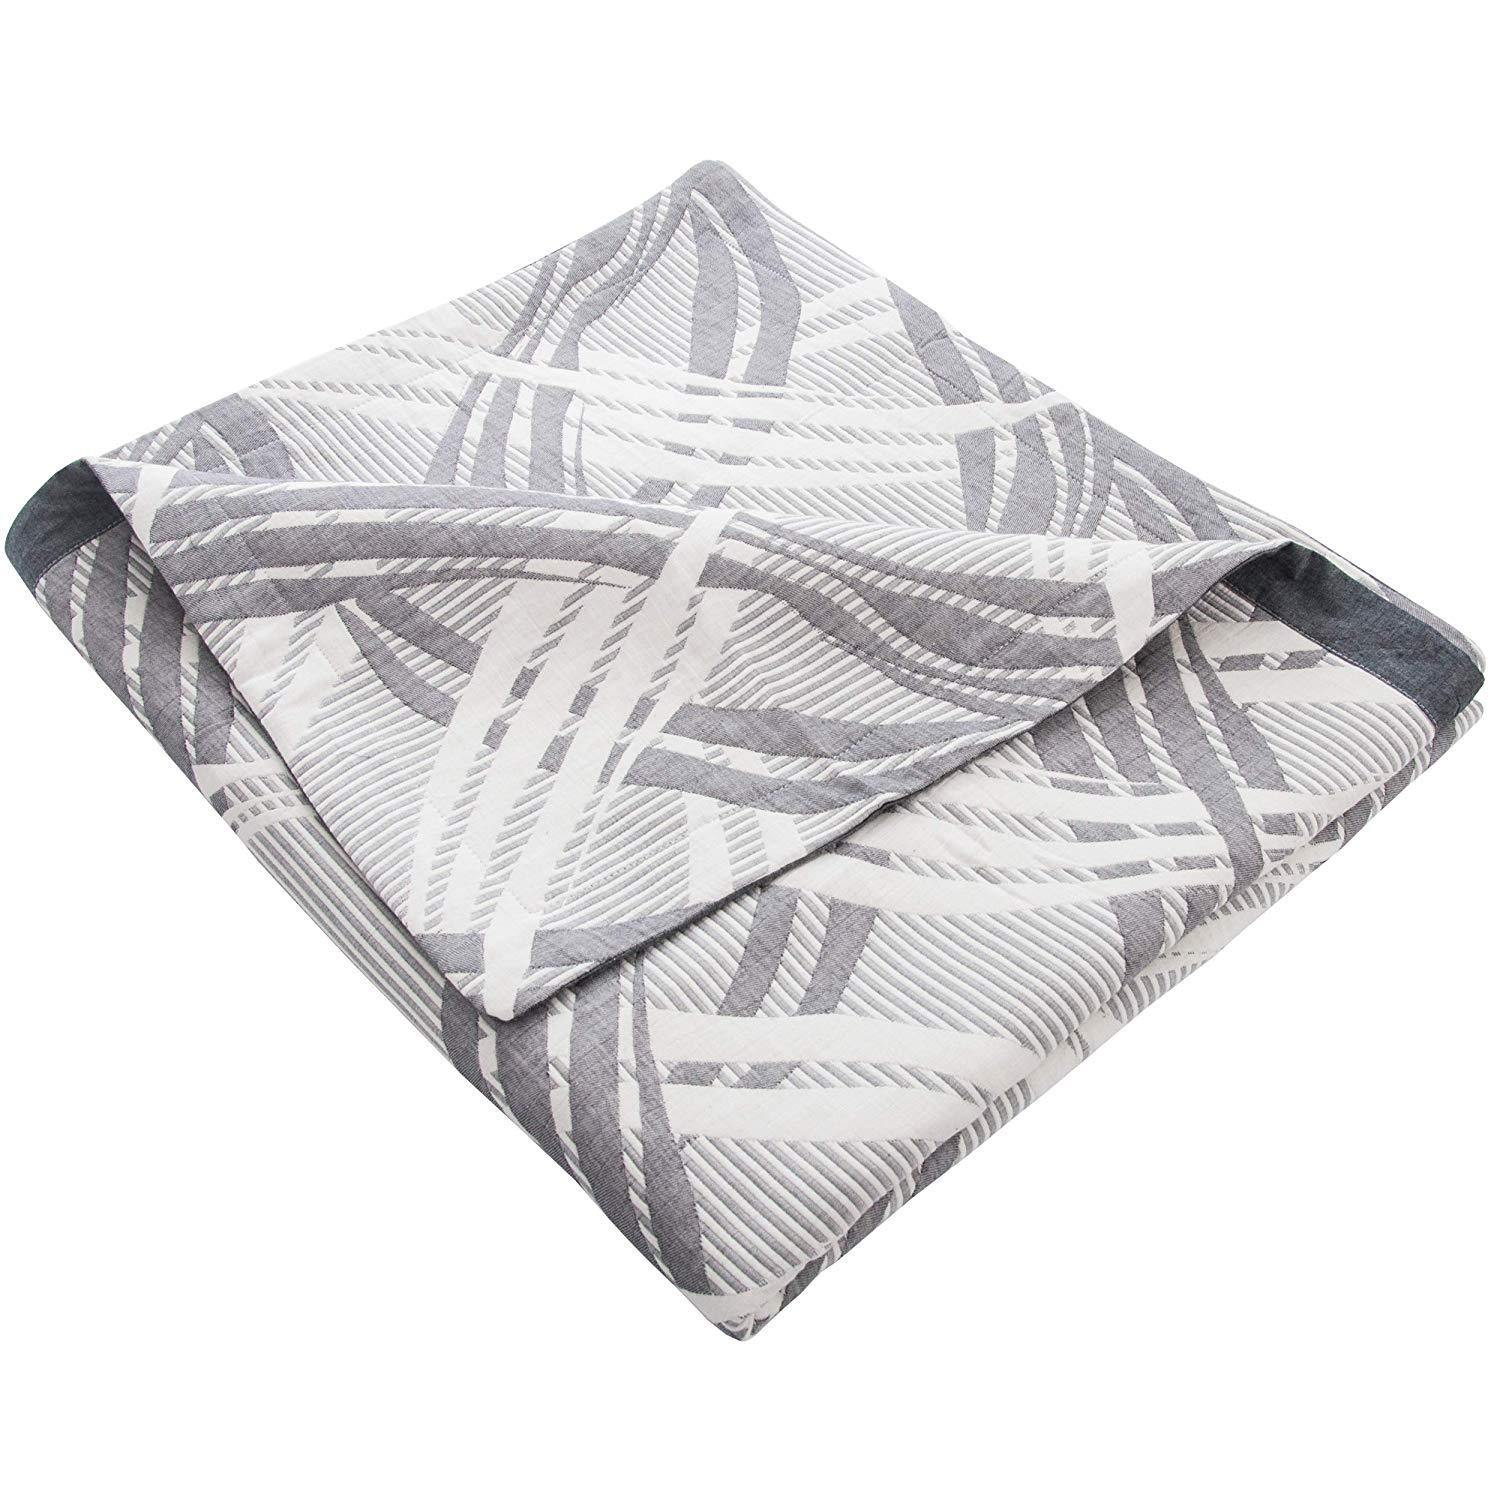 NTBAY 3 Layer Cotton Toddler Blanket